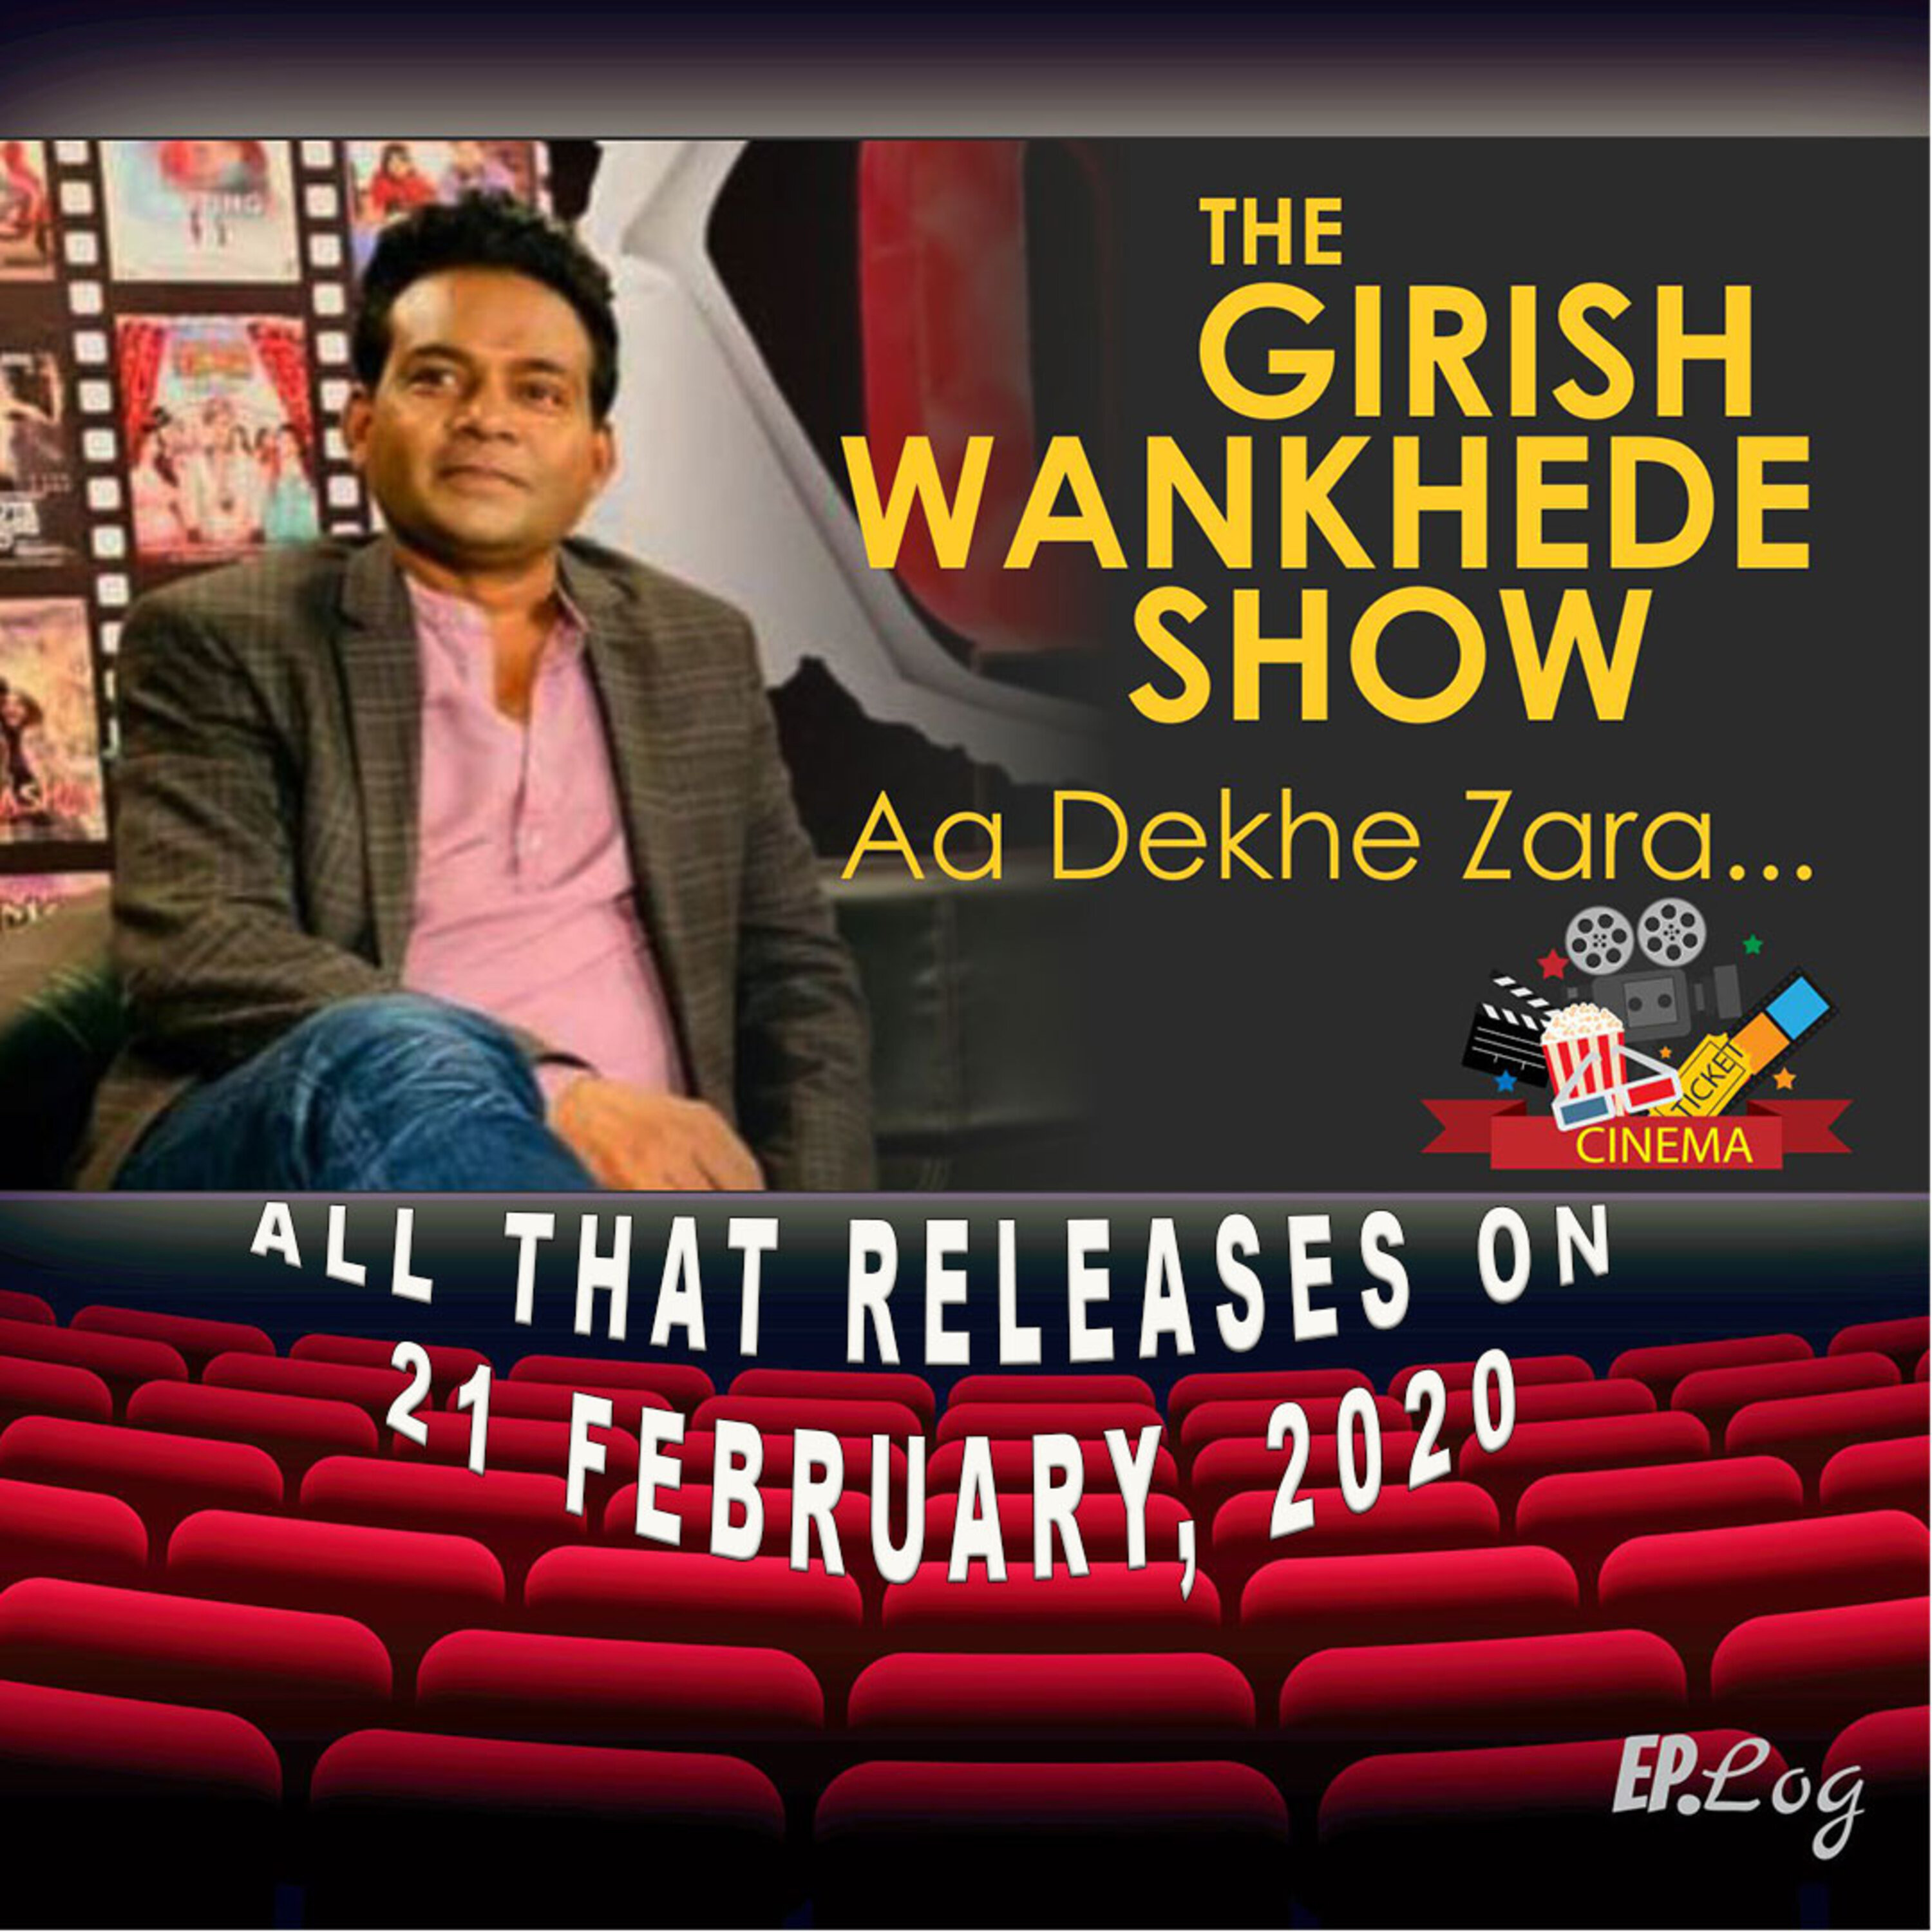 All That Releases on 21st February 2020 & Analysis